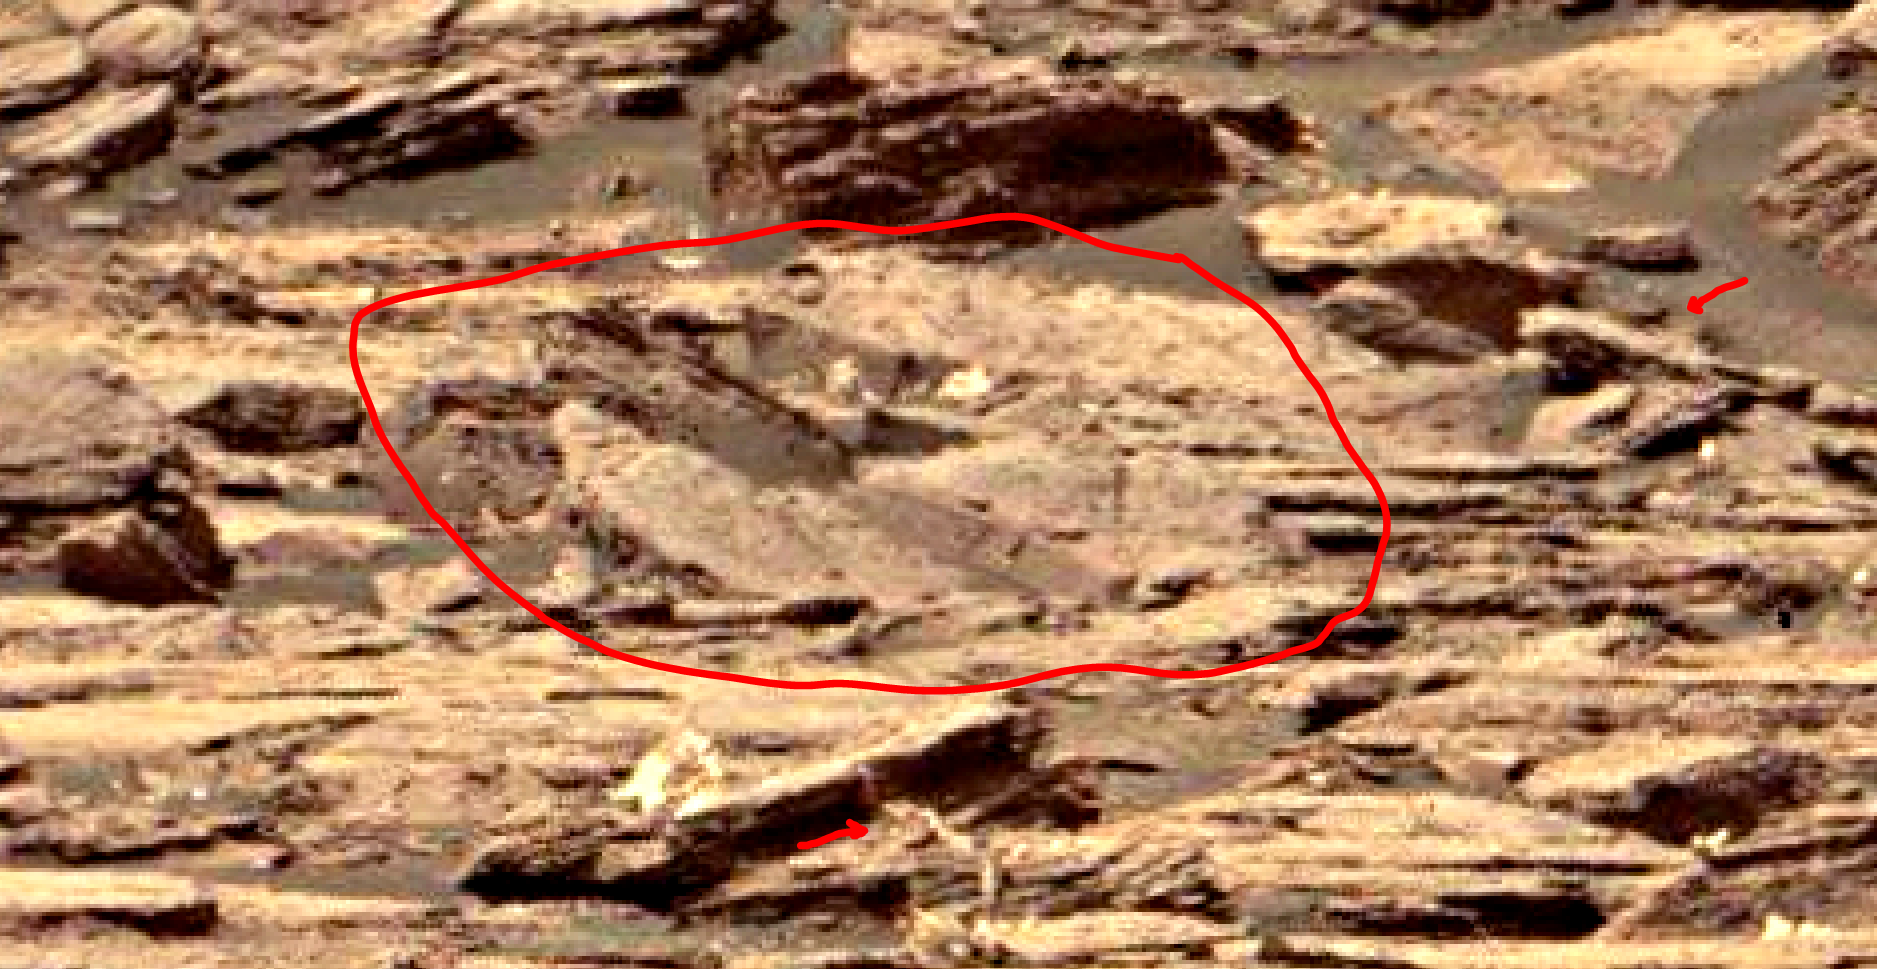 mars-sol-1493-anomaly-artifacts-8-was-life-on-mars